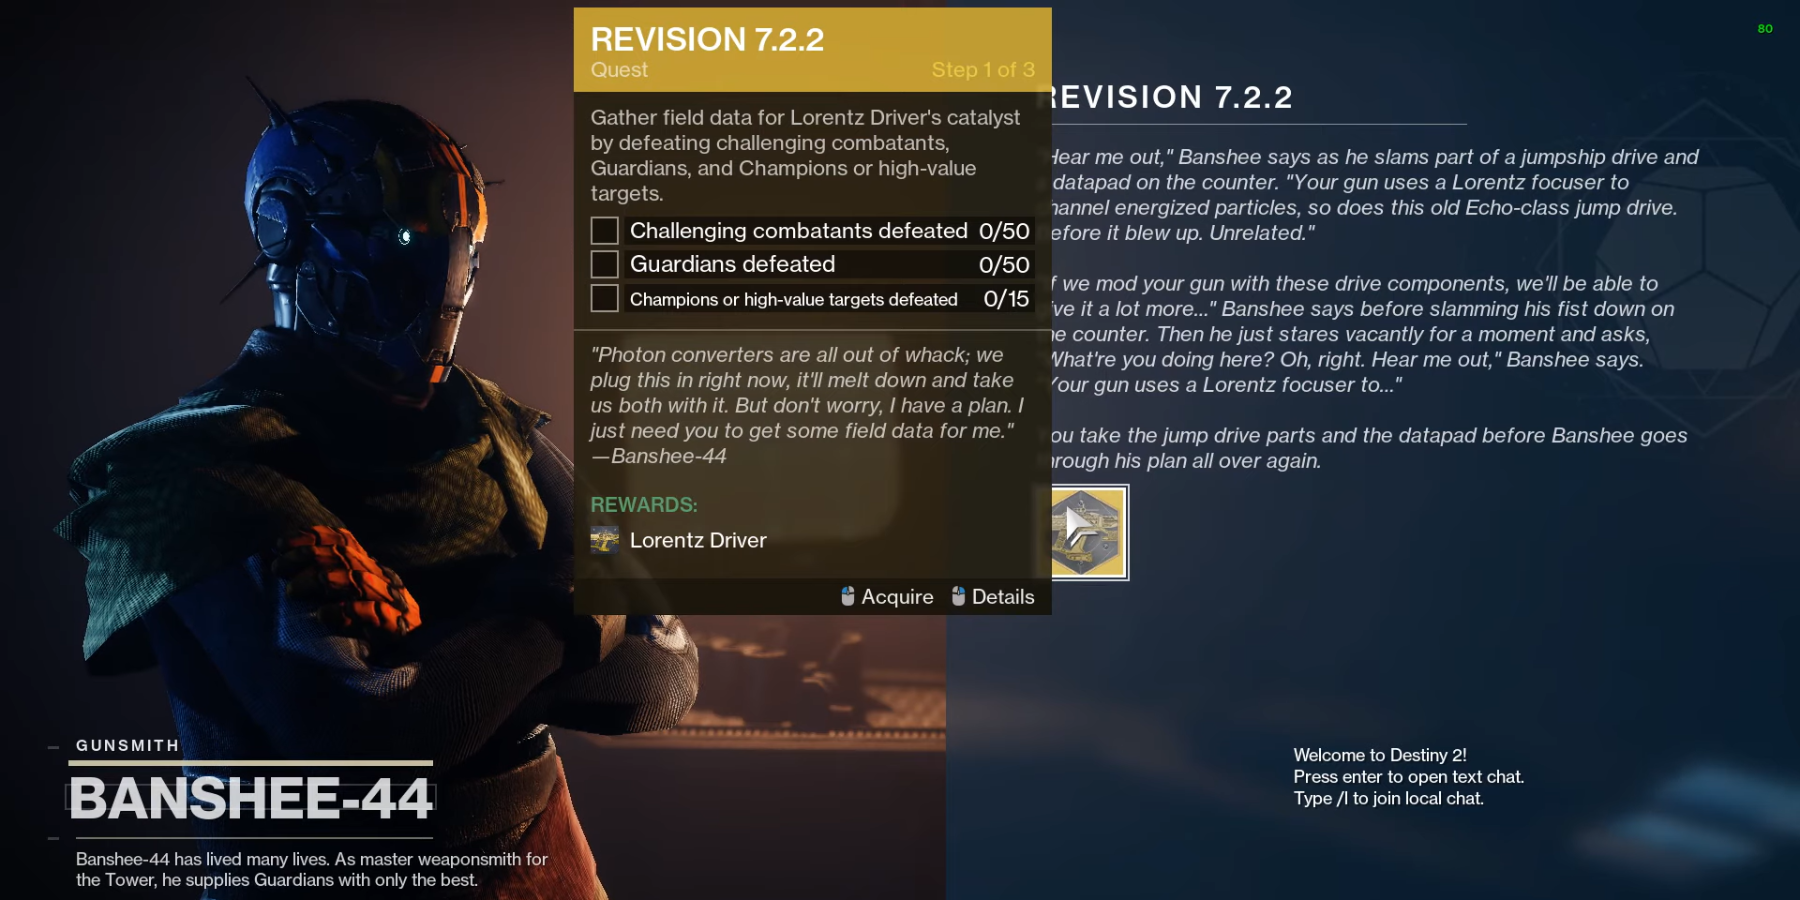 Destiny 2: How to Get Lorentz Driver's Catalyst and What it Does